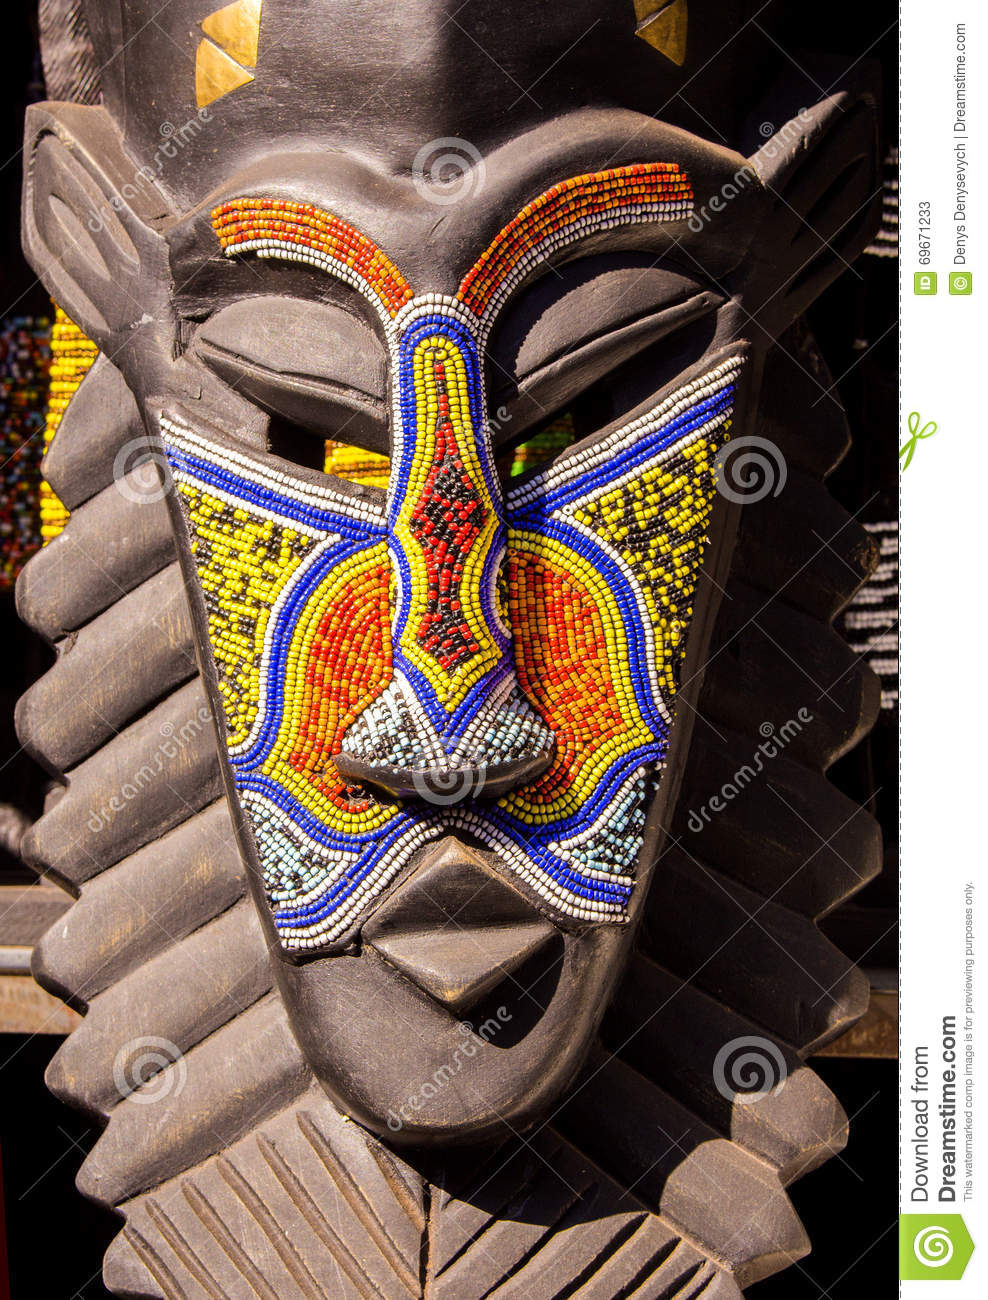 18 with Stock Photo African Wooden Ethnic Tribal Ritual Beards Mask Handmade Decorated South Africa Craftsmanship Souvenir Image69671233 on India Map With Symbols also The Most Beautiful And Famous Trees On Earth moreover Kenya further Anthony Kiedis Haidi Thunderbird Native American Back Tattoo moreover Himalayan Maidenhair Fern.